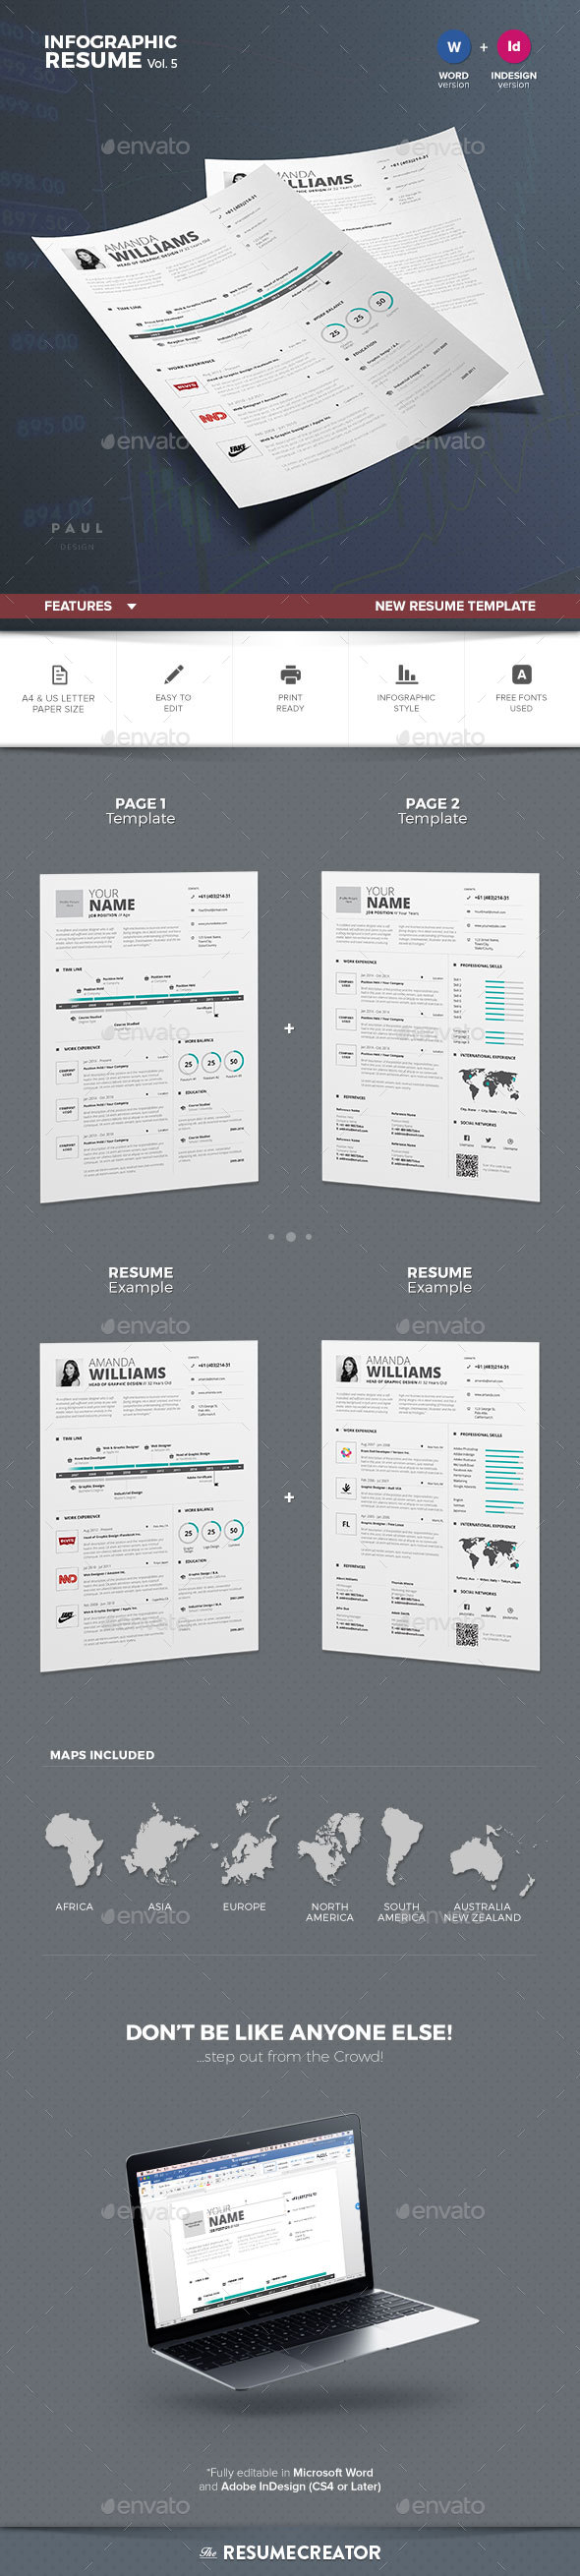 Infographic resumecv volume 5 infographic resume adobe indesign indesign templates infographic resumecv yelopaper Images